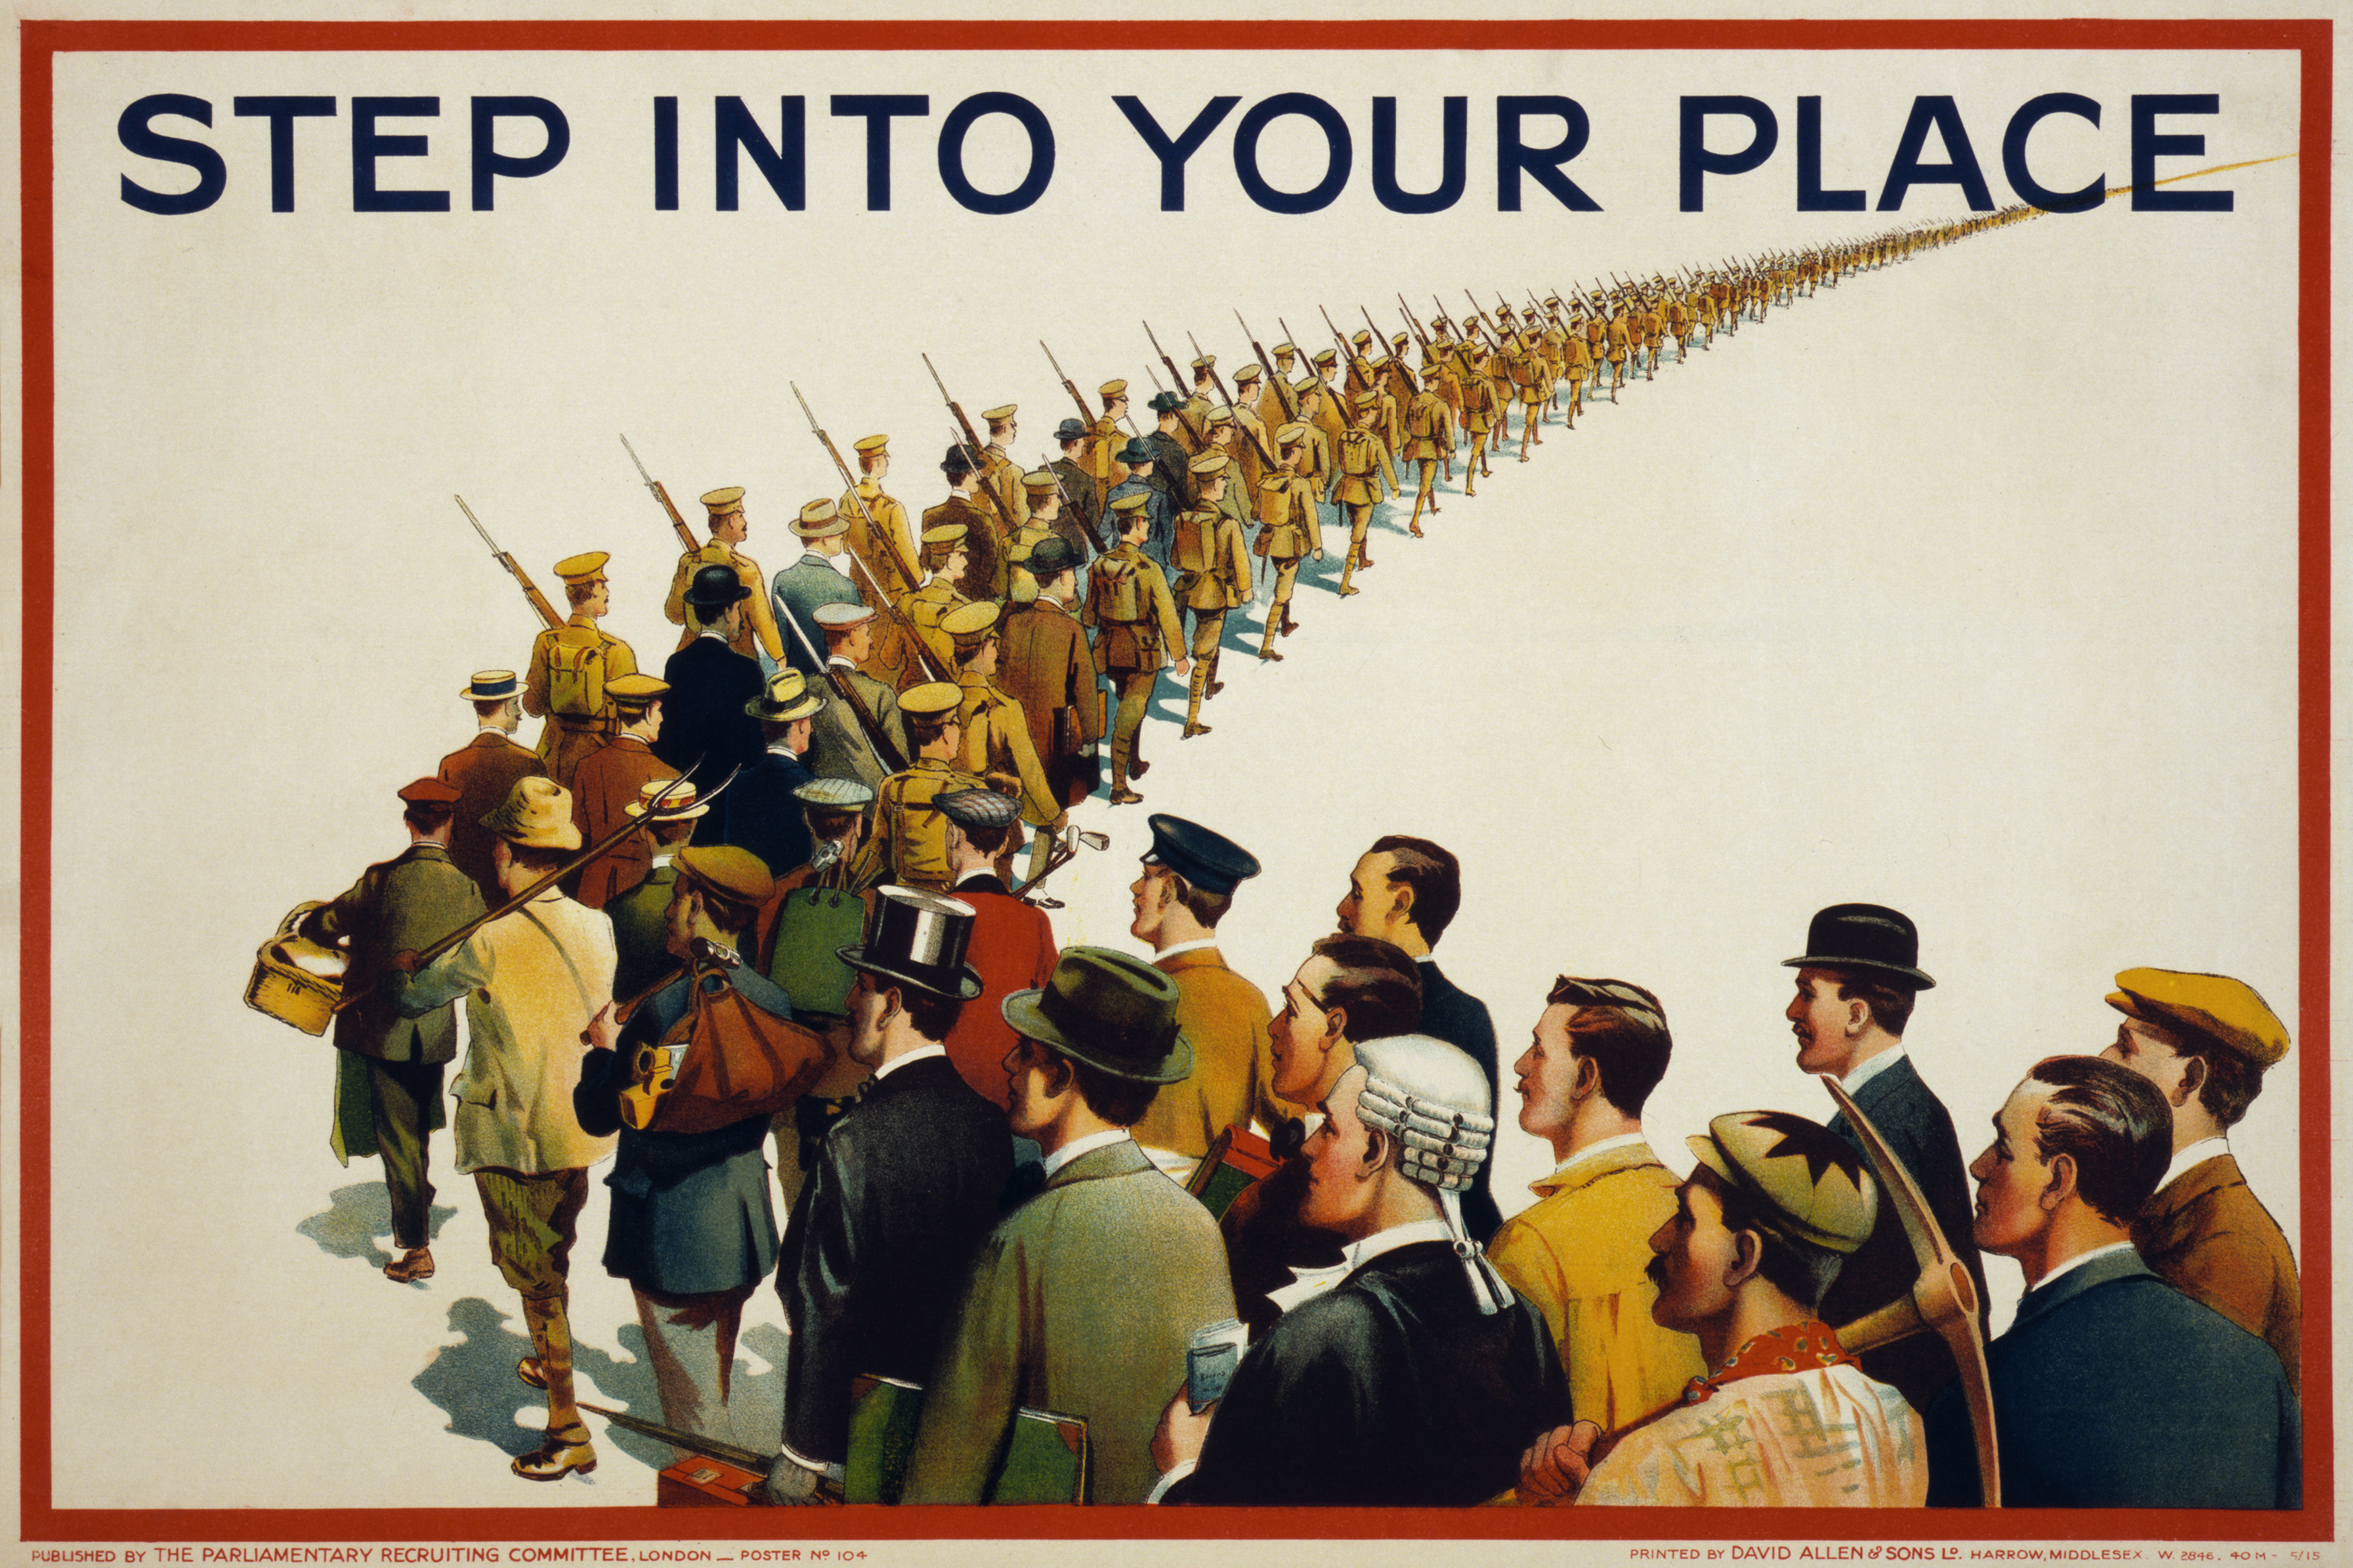 Step_into_your_place_propaganda_poster_1915.jpg